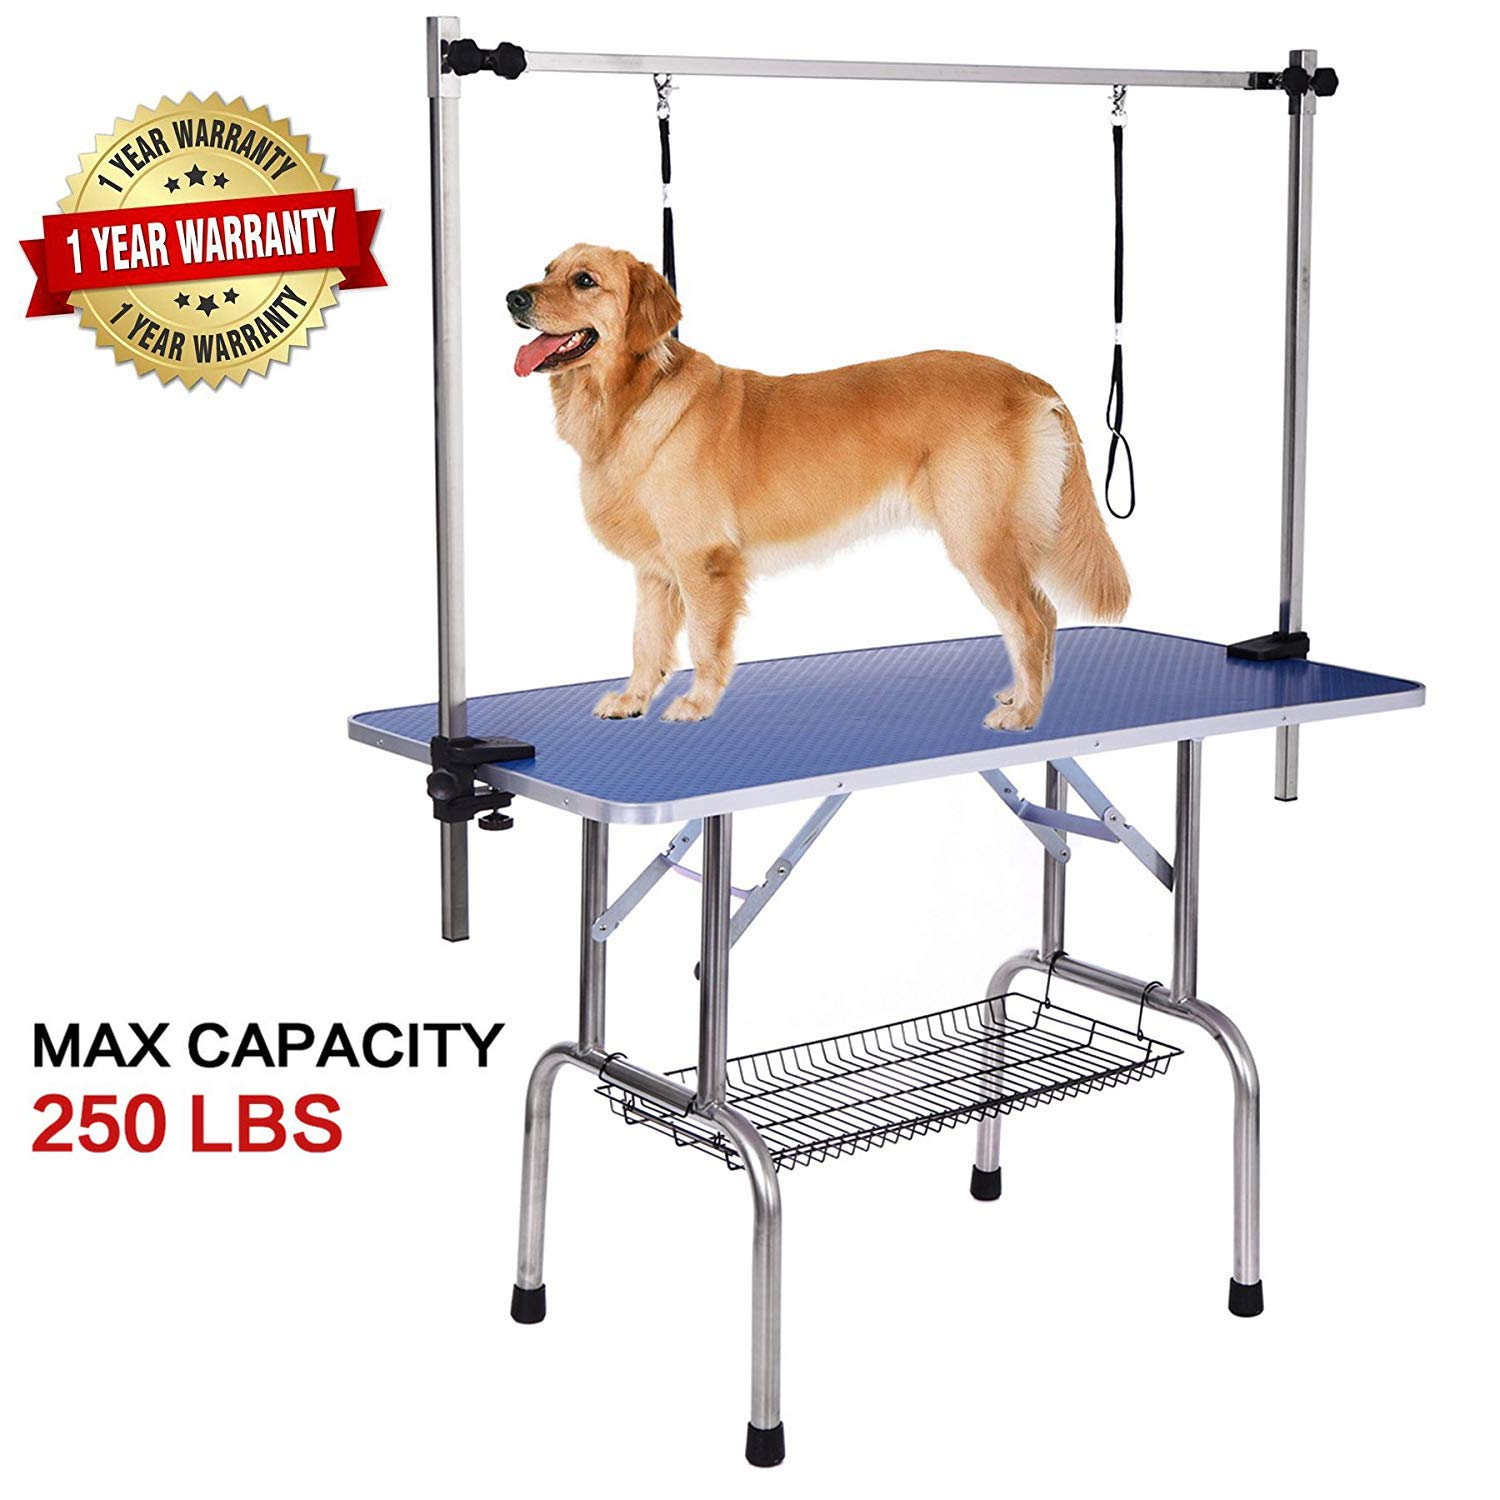 Heavy Duty Dog Pet Grooming Table Large Professional Adjustable with Arm & Noose & Mesh Tray, Maximum Capacity Up to 250LB, 46''/ Blue